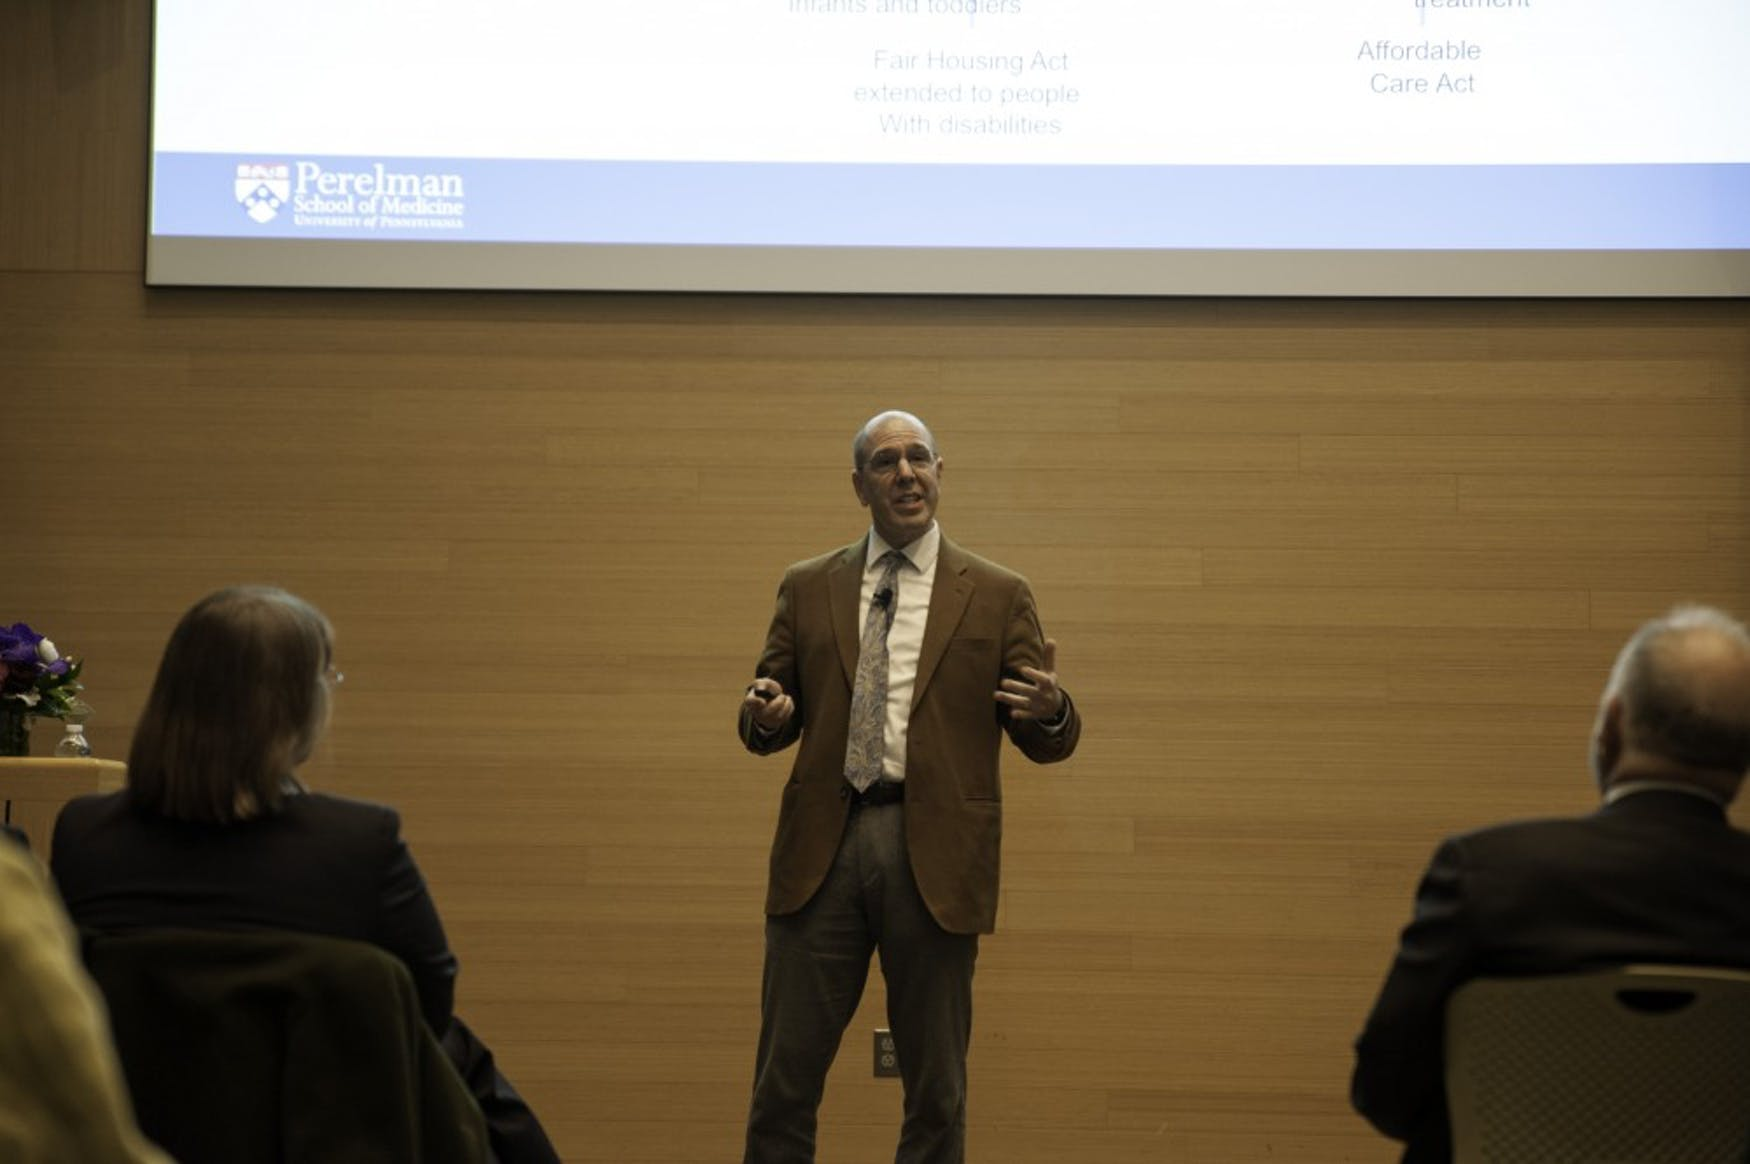 lurie-distinguished-lecture-11-8-17-d-g-0026